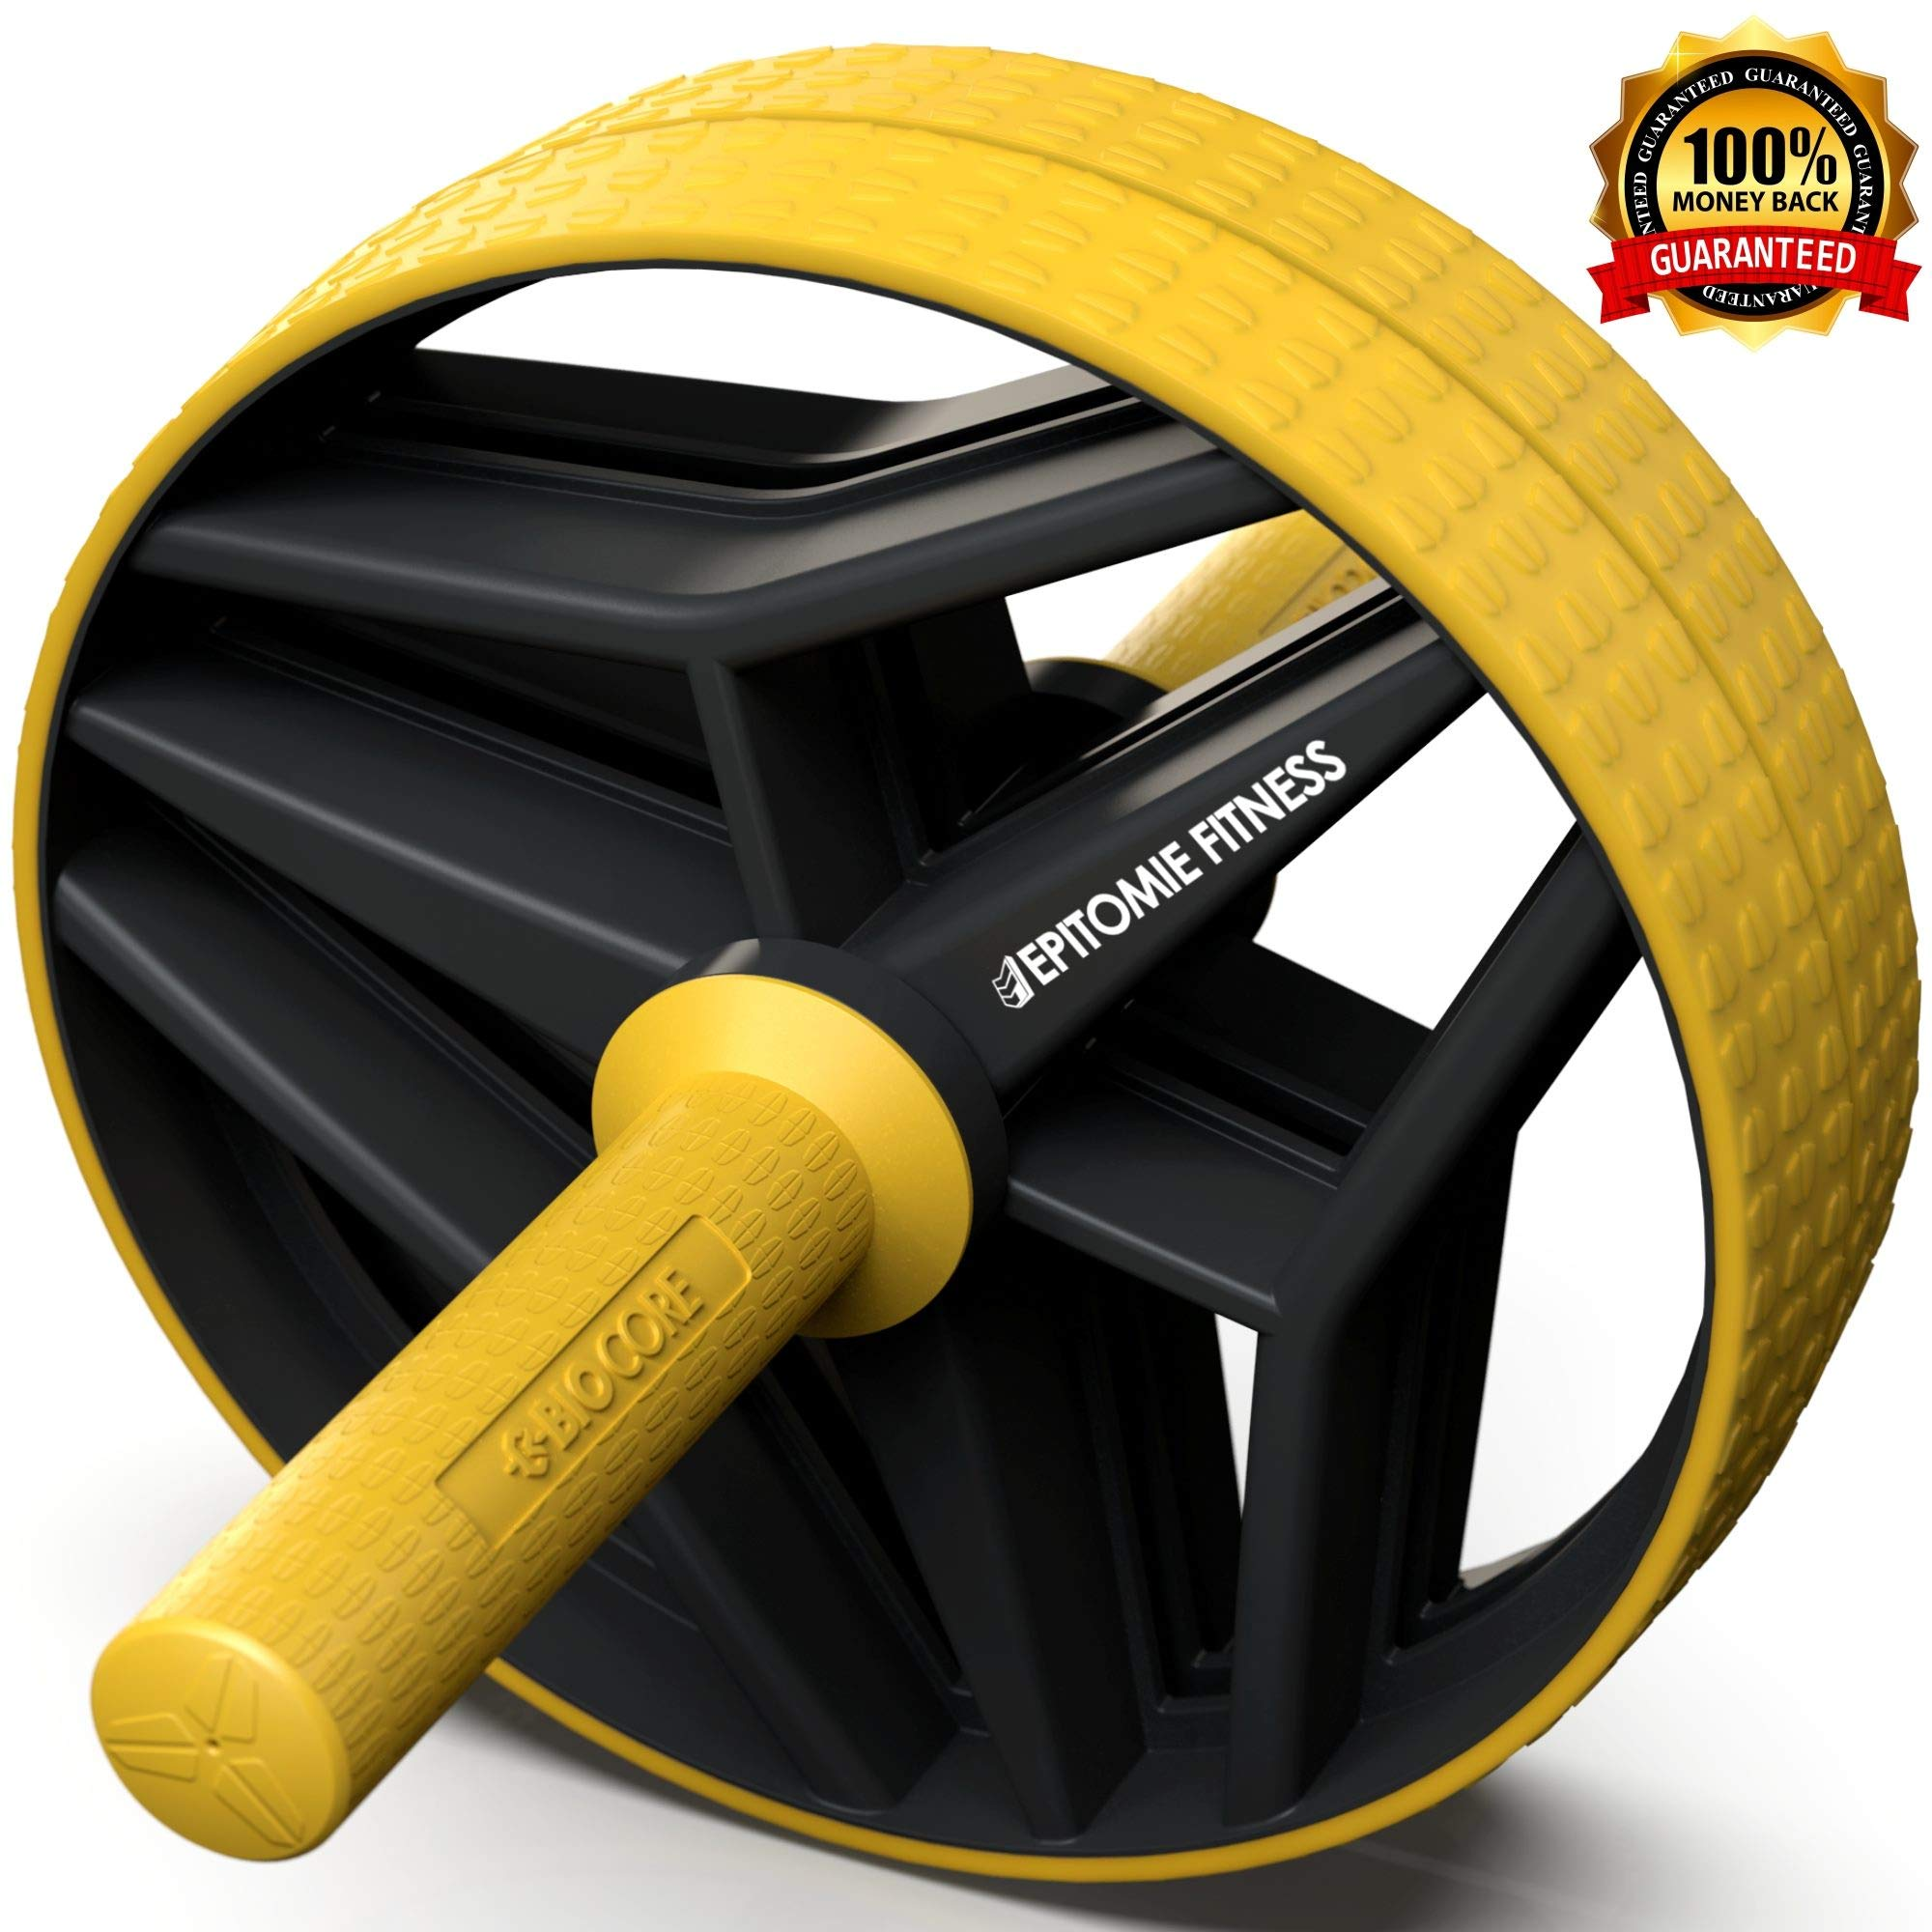 Epitomie Fitness BIO Core Ab Roller Wheel with 2 Configurable Wheels and Non-Slip Handles - Ab Wheel Trainer with Kneeling Mat for Strong Core (Yellow/Black)